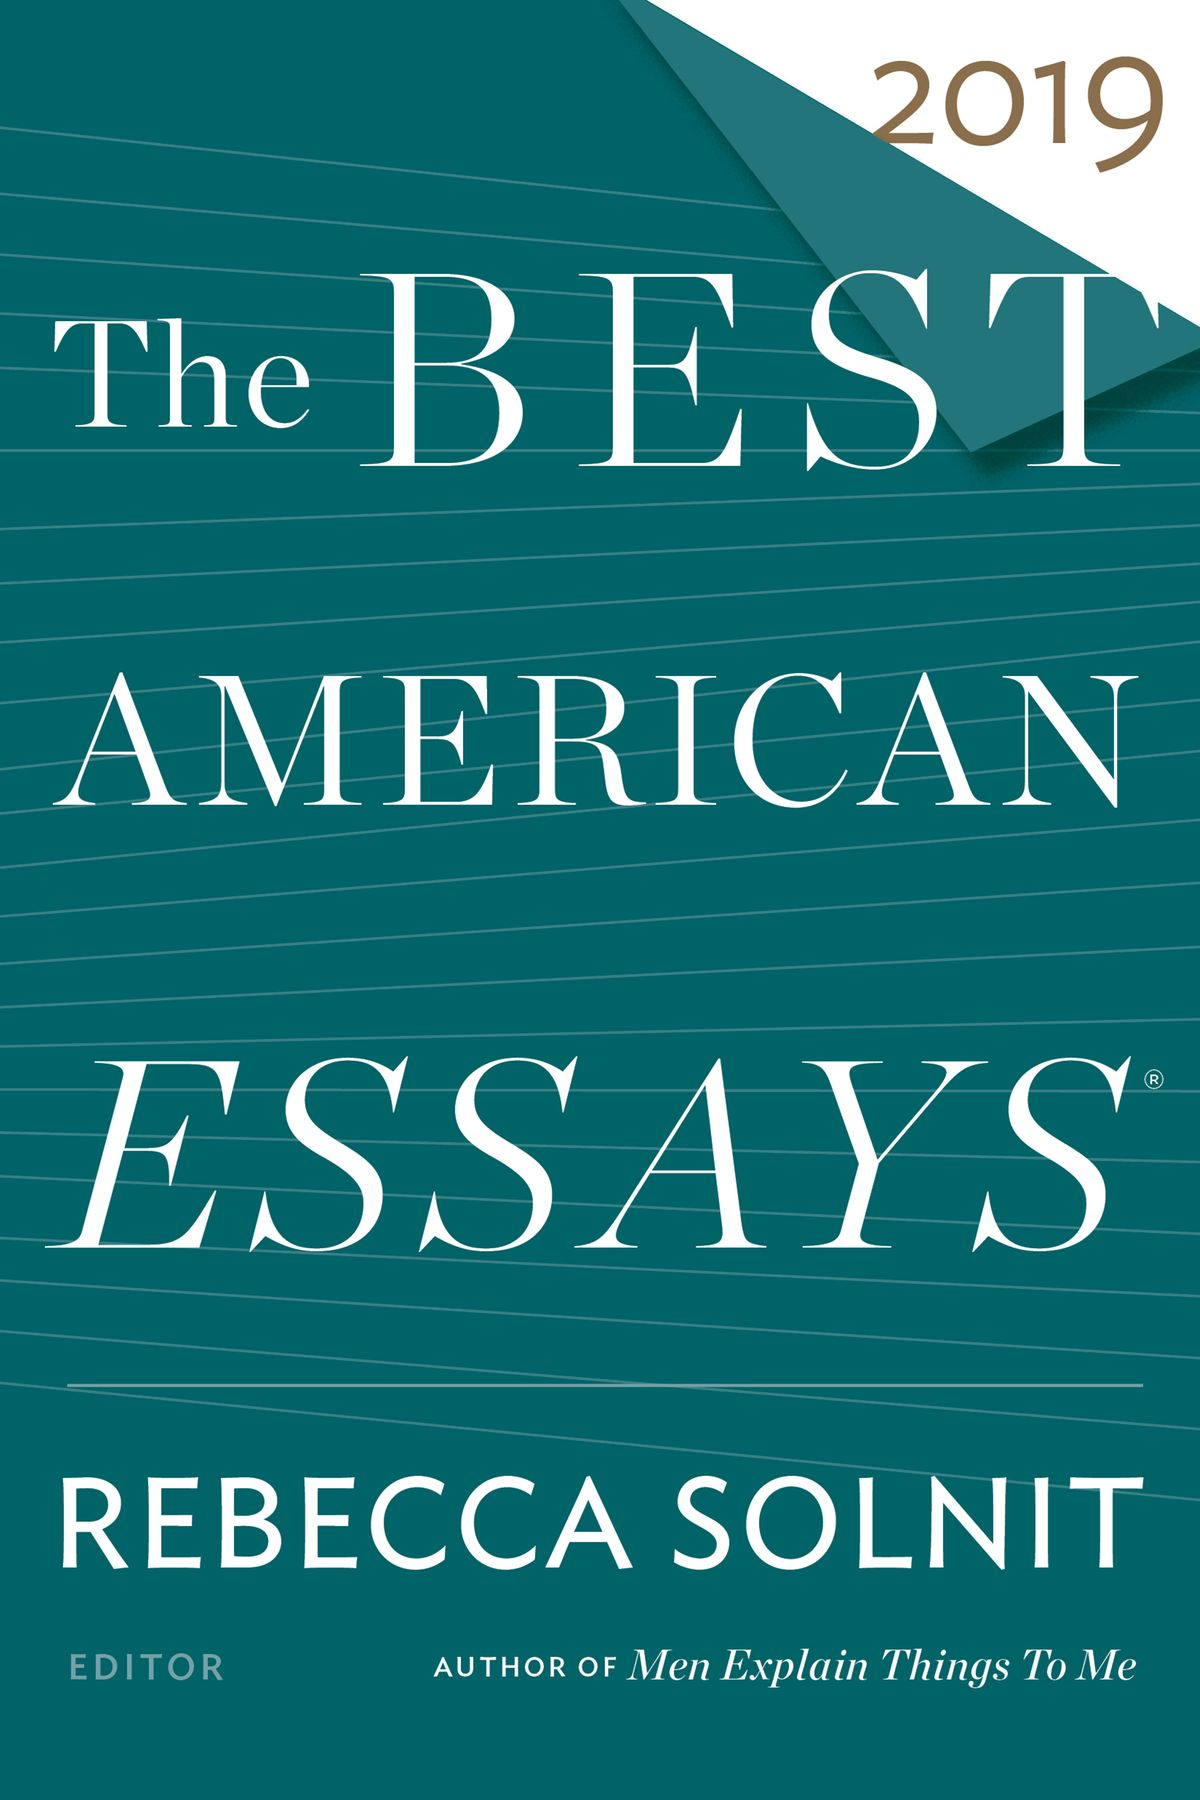 007 The Best American Essays Essay Striking 2017 Pdf Submissions 2019 Of Century Table Contents Full